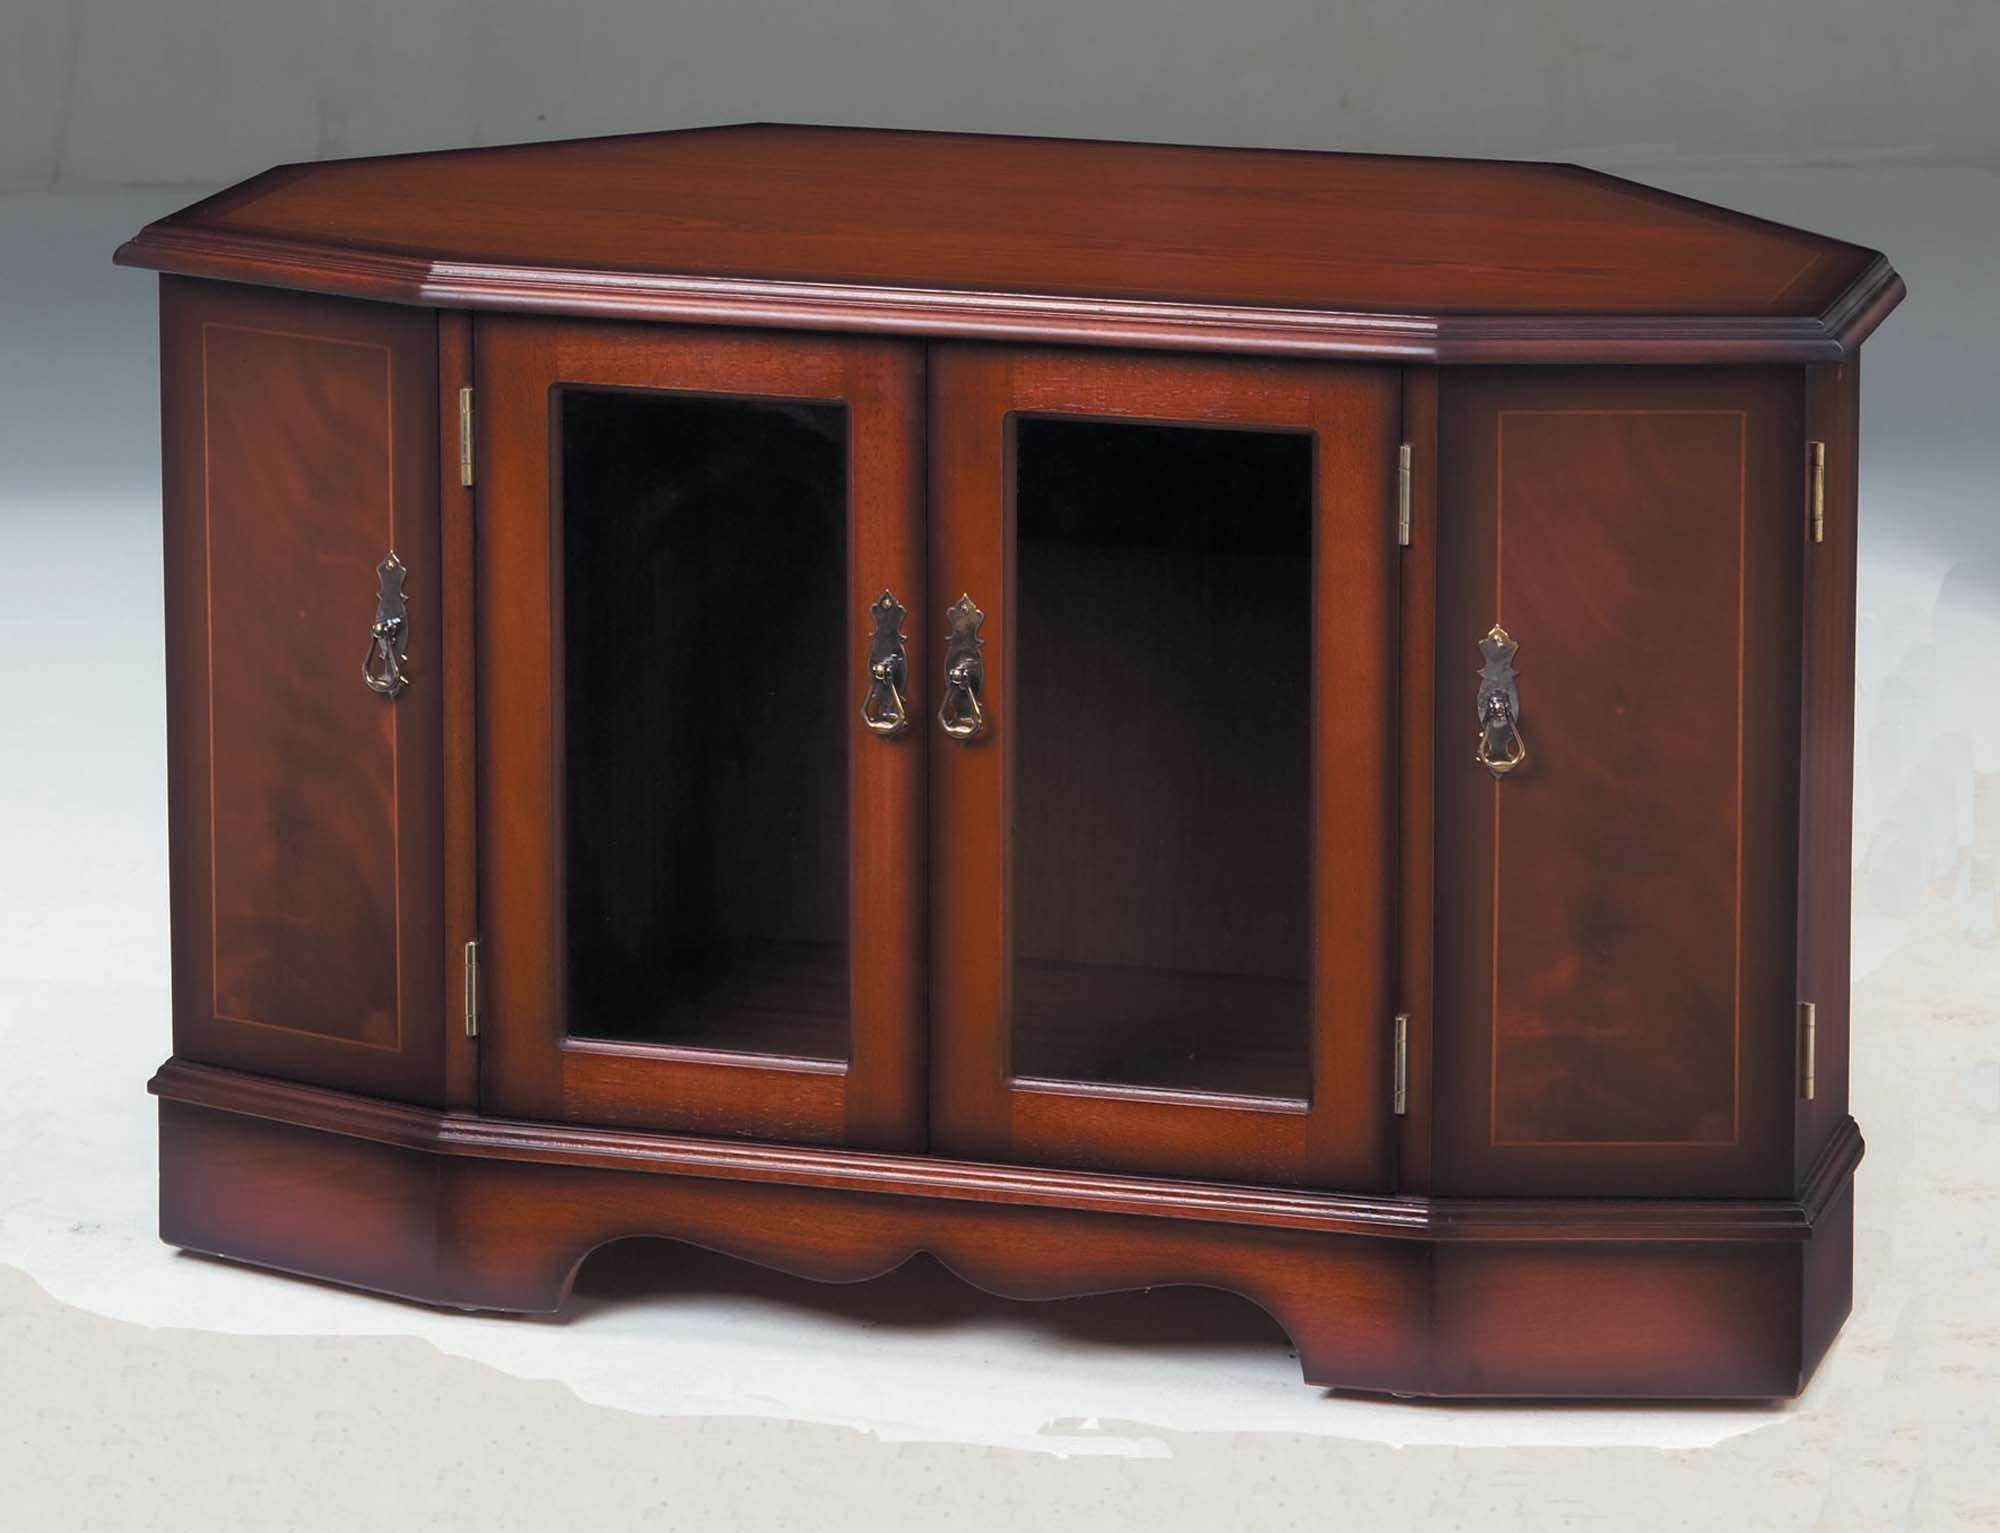 Strongbow Mahogany 1037 Corner Tv Cabinet | Tr Hayes – Furniture Regarding Mahogany Corner Tv Cabinets (View 18 of 20)